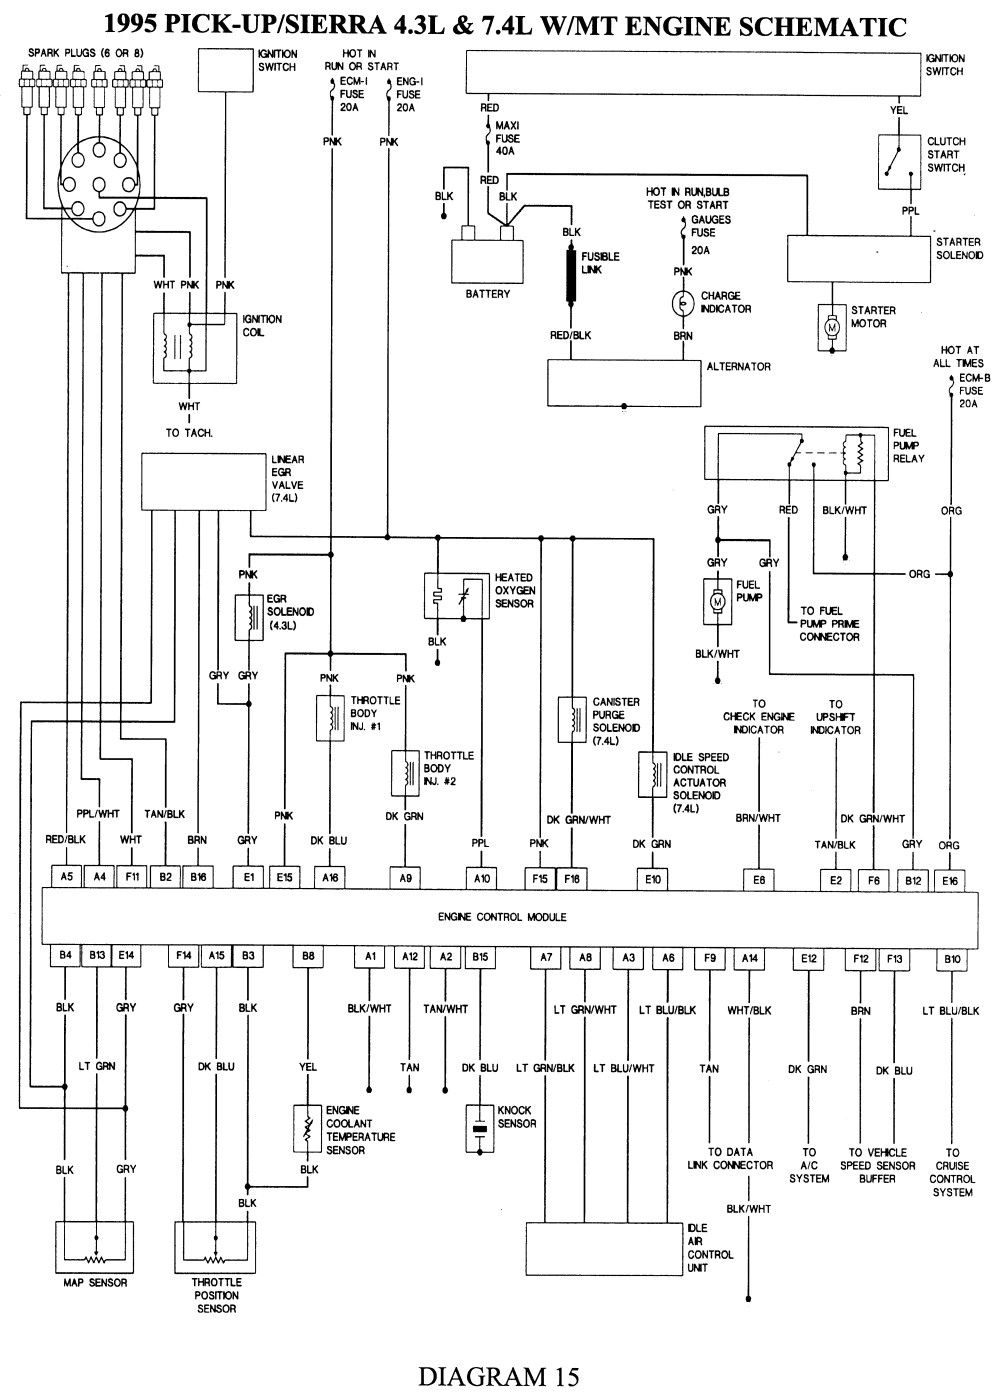 Ignition Mercruiser 4.3 Wiring Diagram from i.pinimg.com